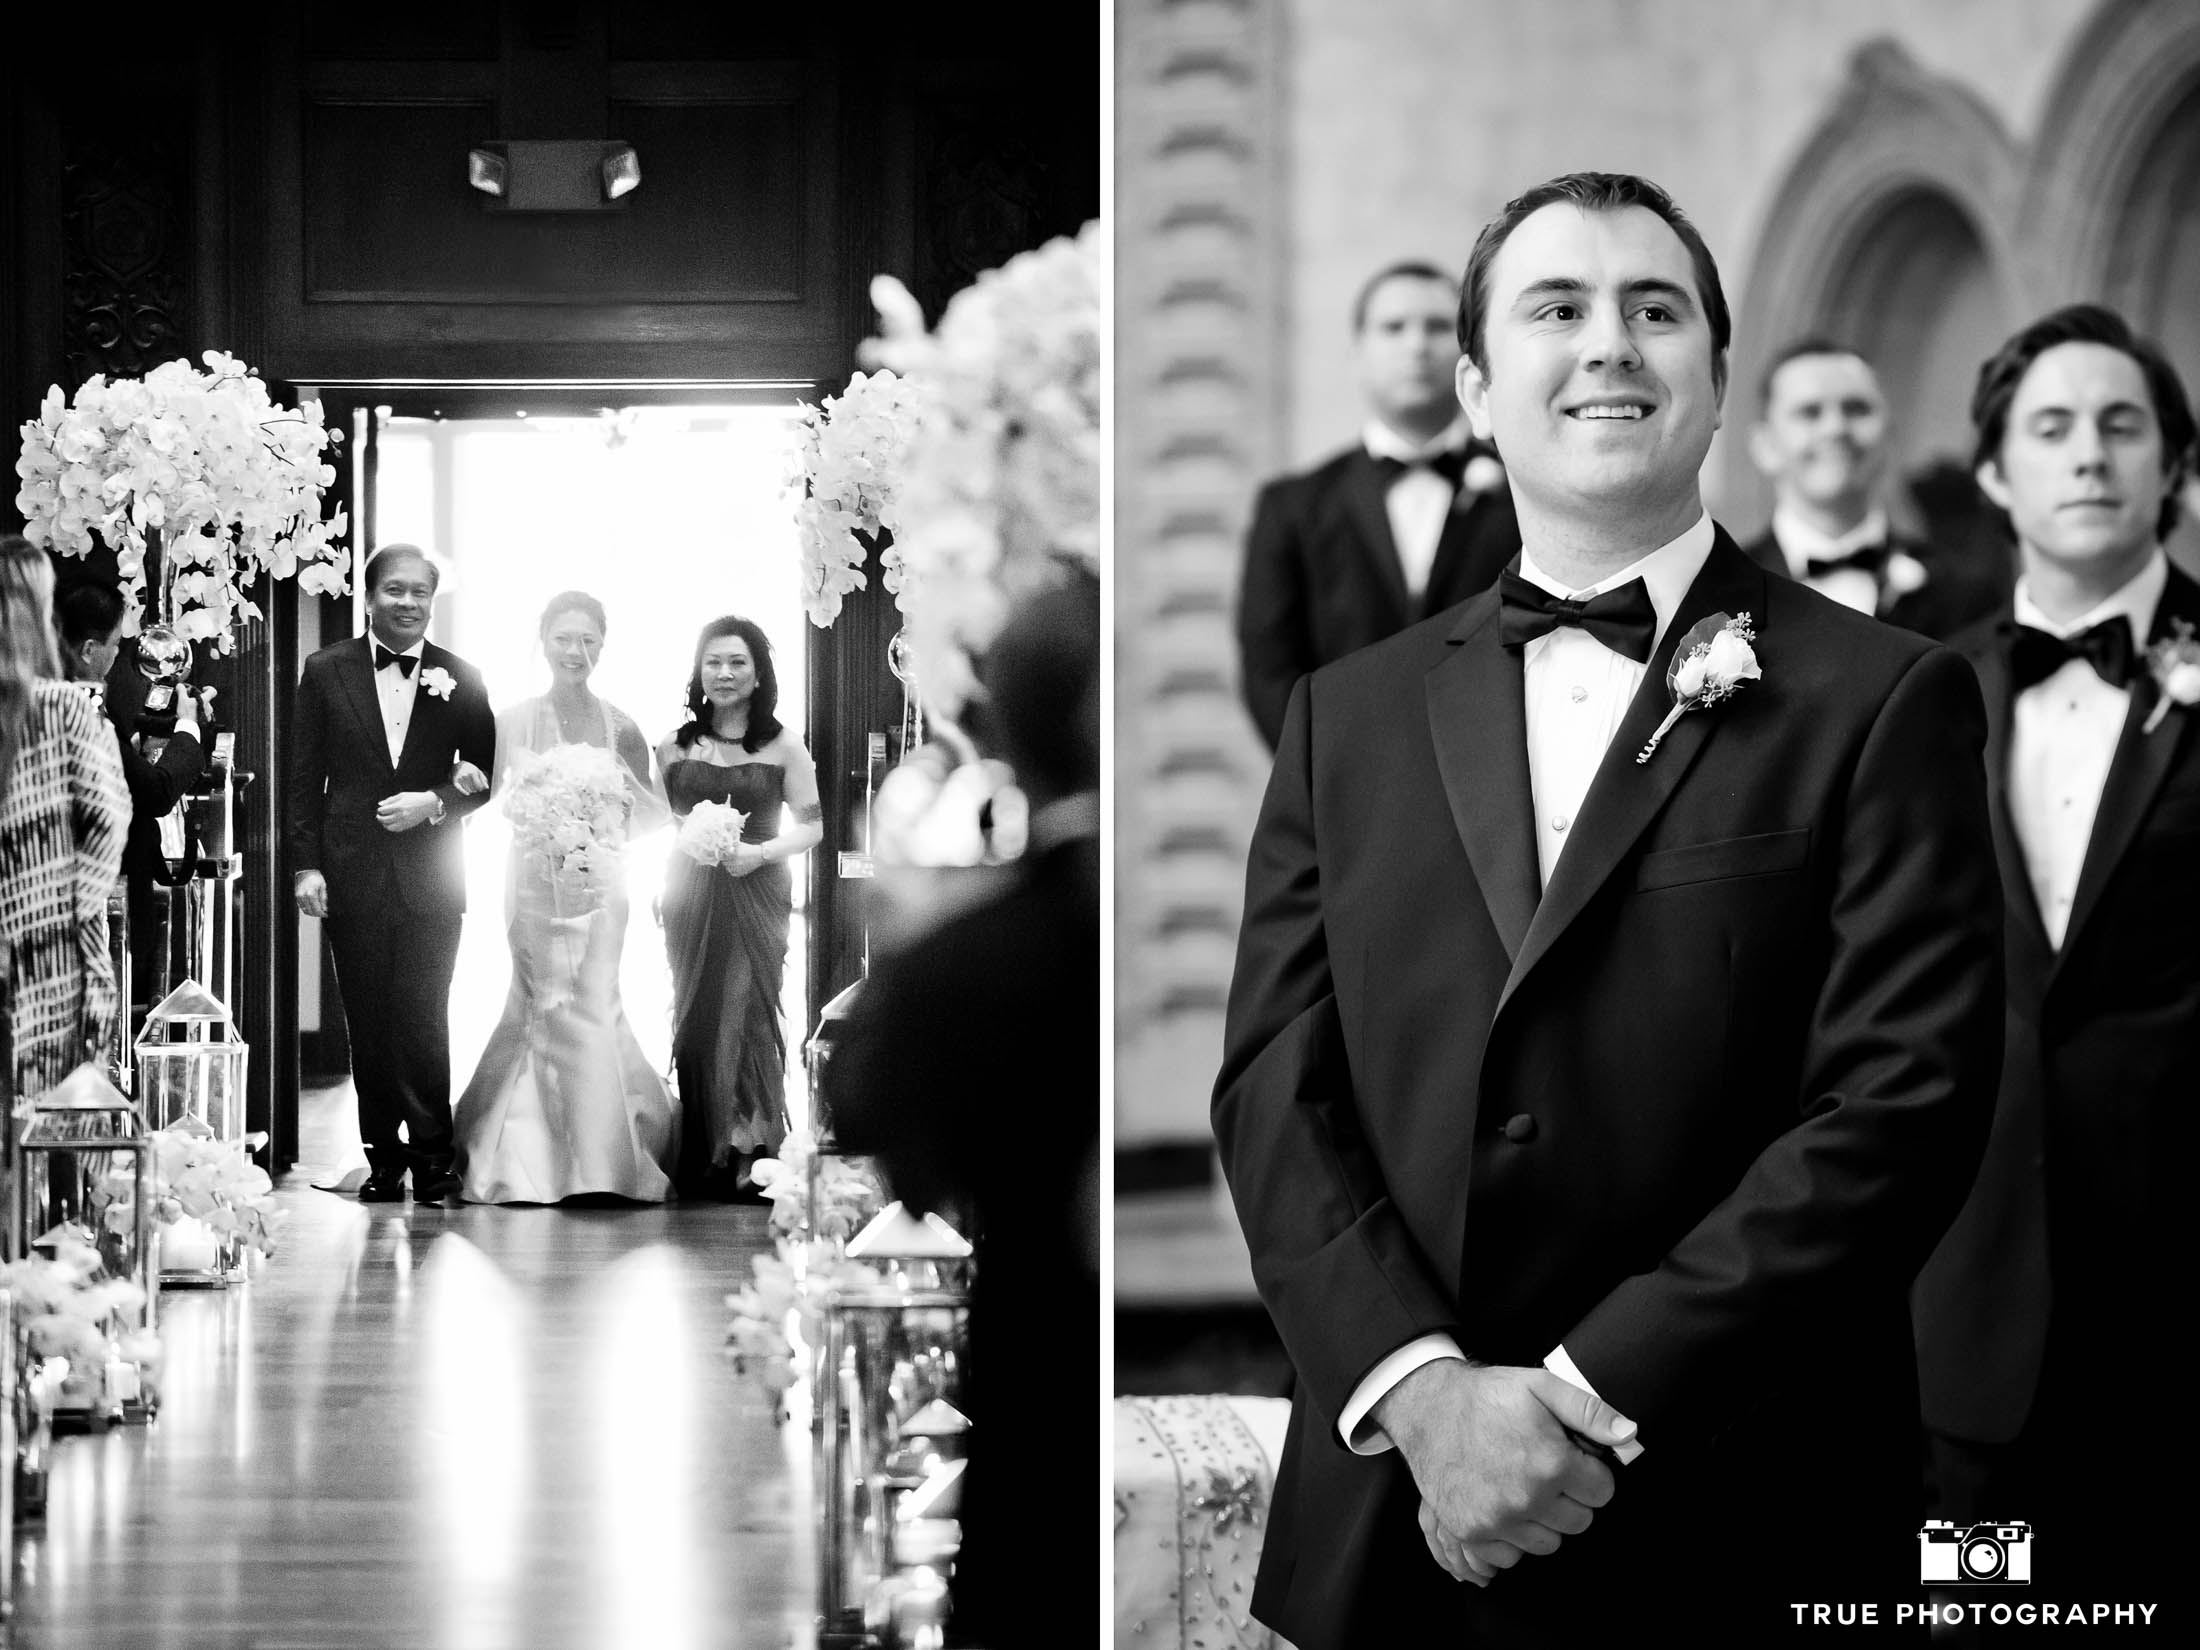 Couples takes advantage having two photographers at their wedding